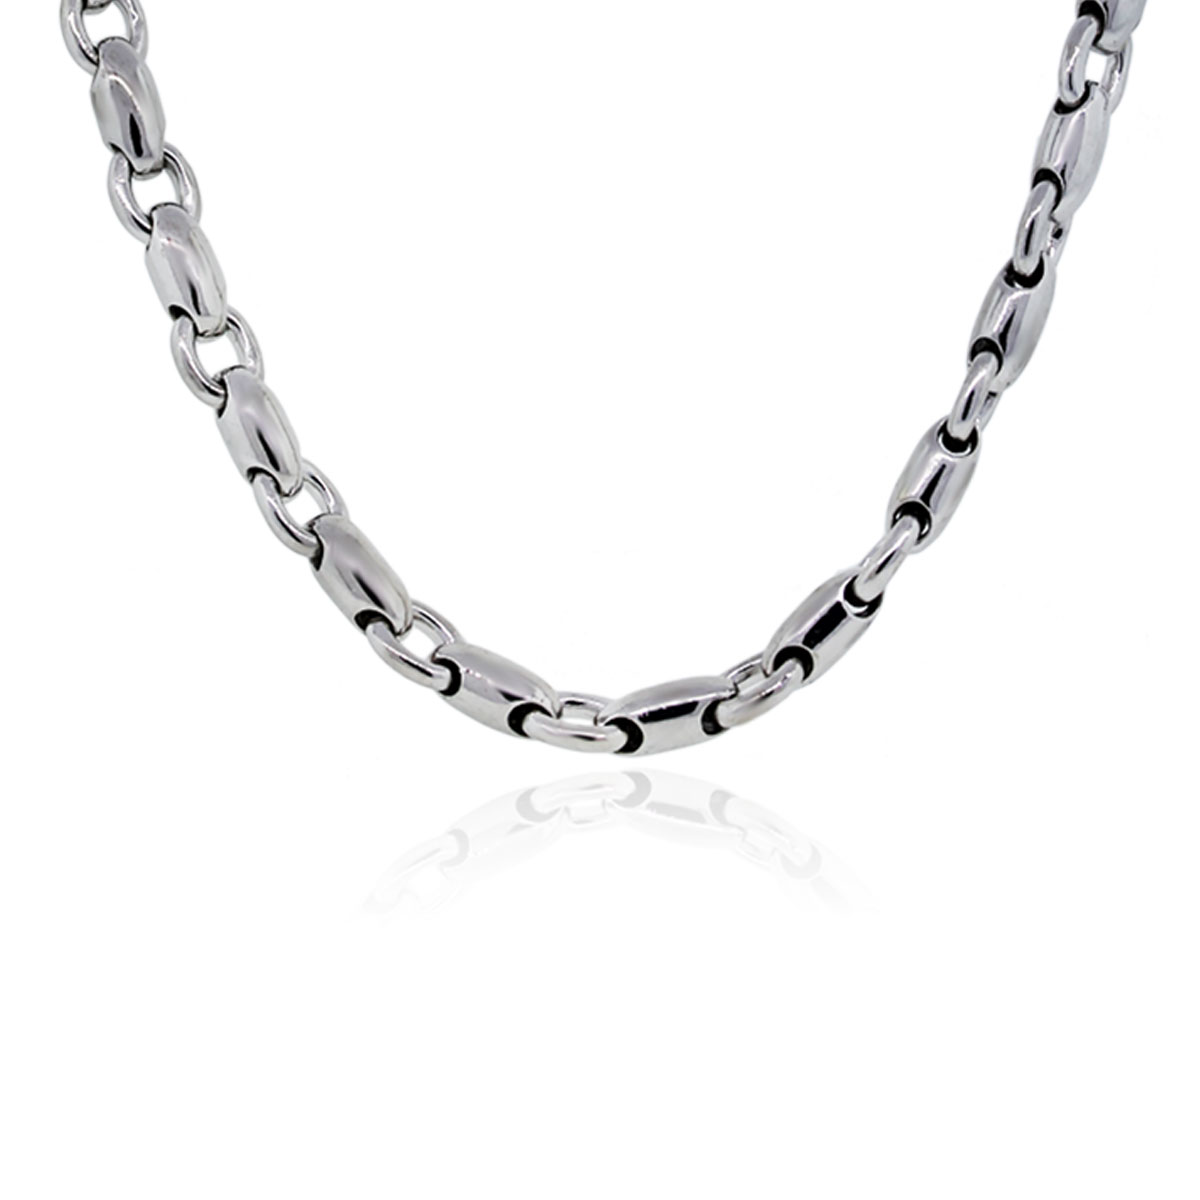 Silver chains for men with price